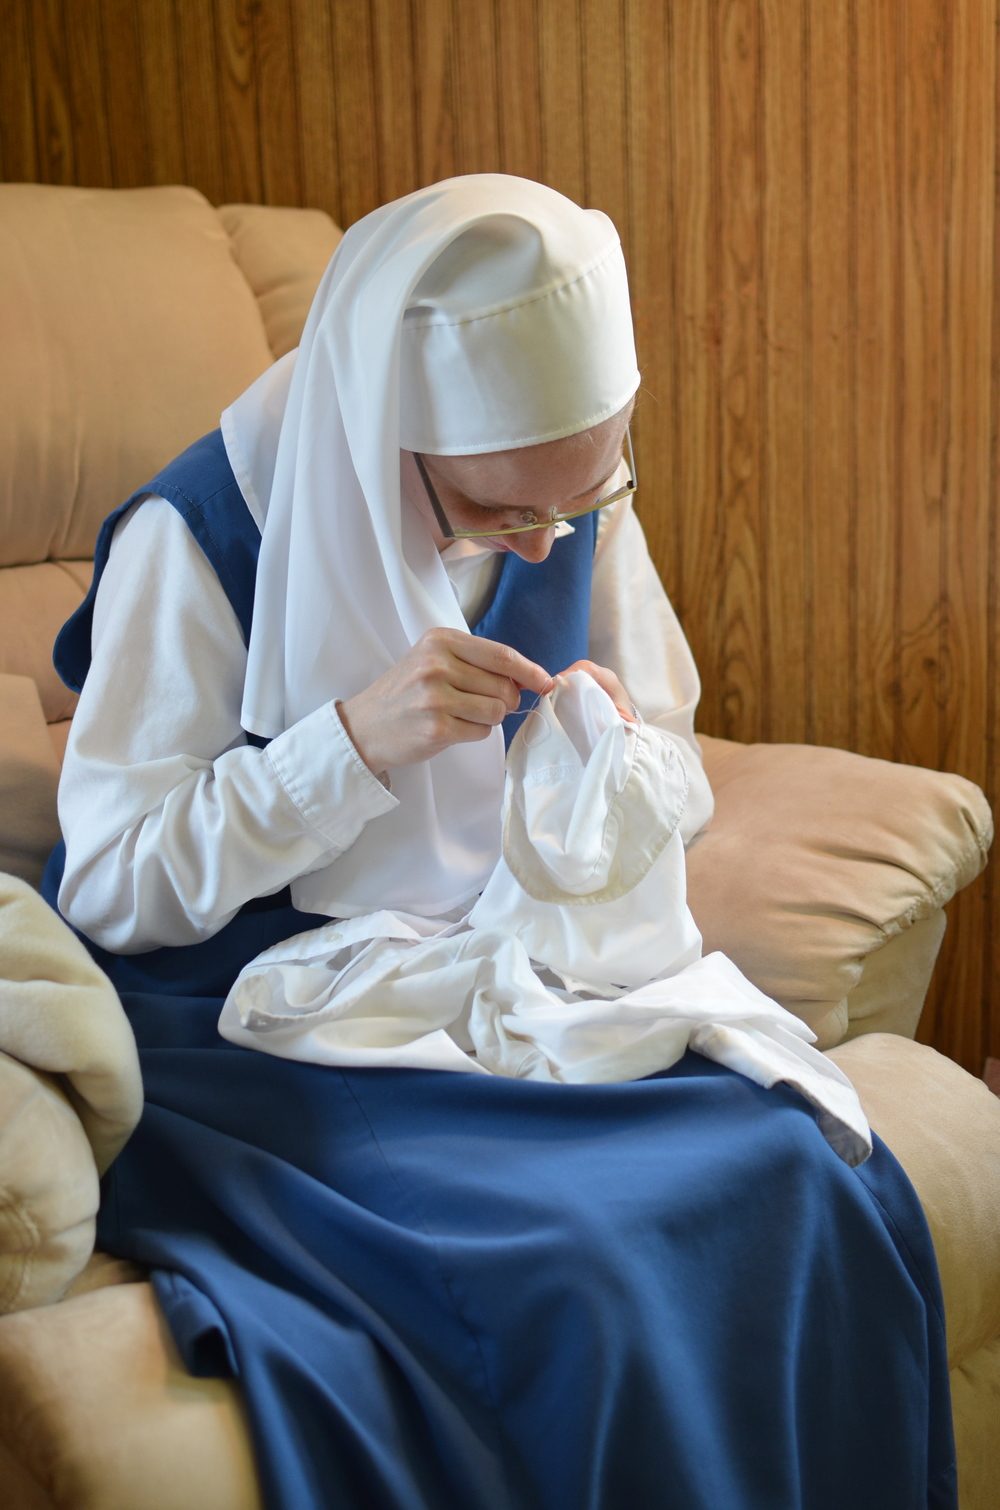 Sr. Maria mends her blouse.